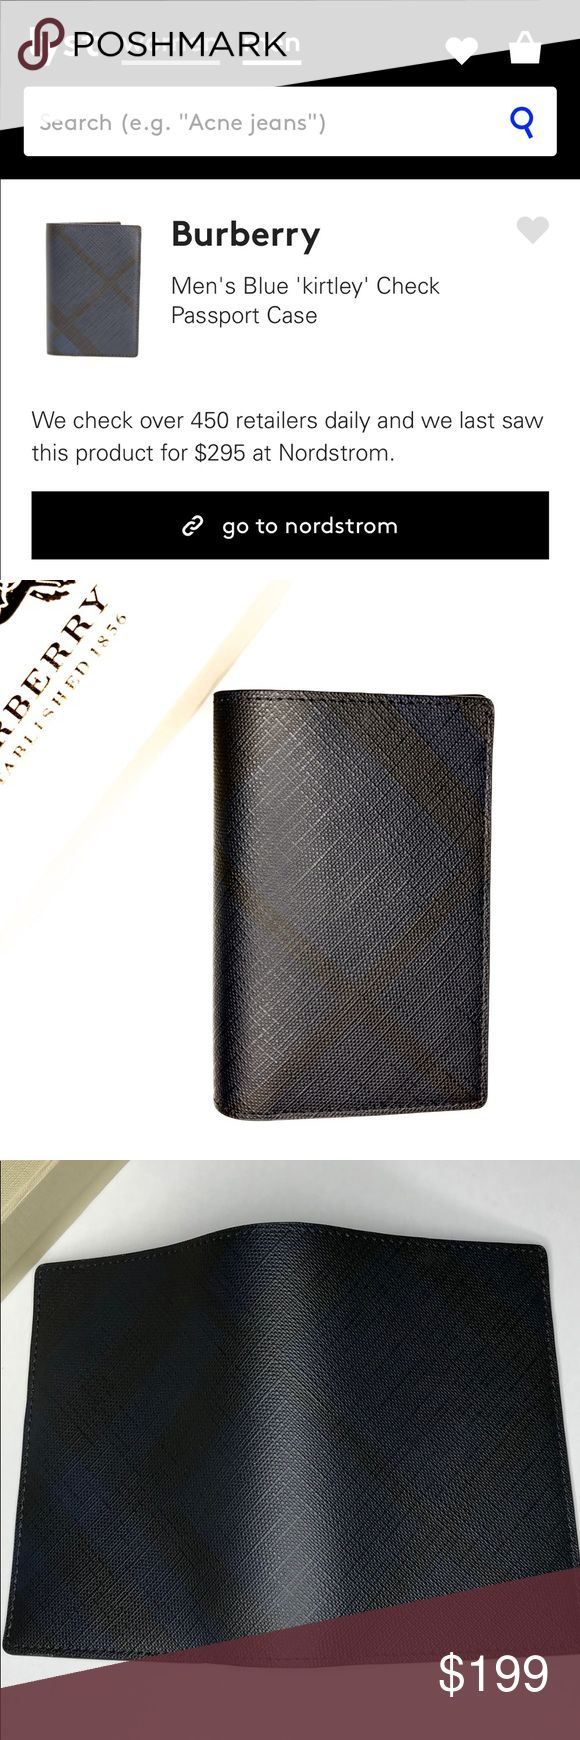 """💯 Burberry kirtley check passport holder wallet 💯 Burberry """"Kirtley"""" passport case/holder in London check PVC with smooth leather trim. Nylon lining; six card slots. 5.5""""L x 3.9""""W. Imported.  NWOT  ❕❕NO TRADES❕❕ ✅ READY TO SHIP NEXT DAY✅ Burberry Bags Wallets"""